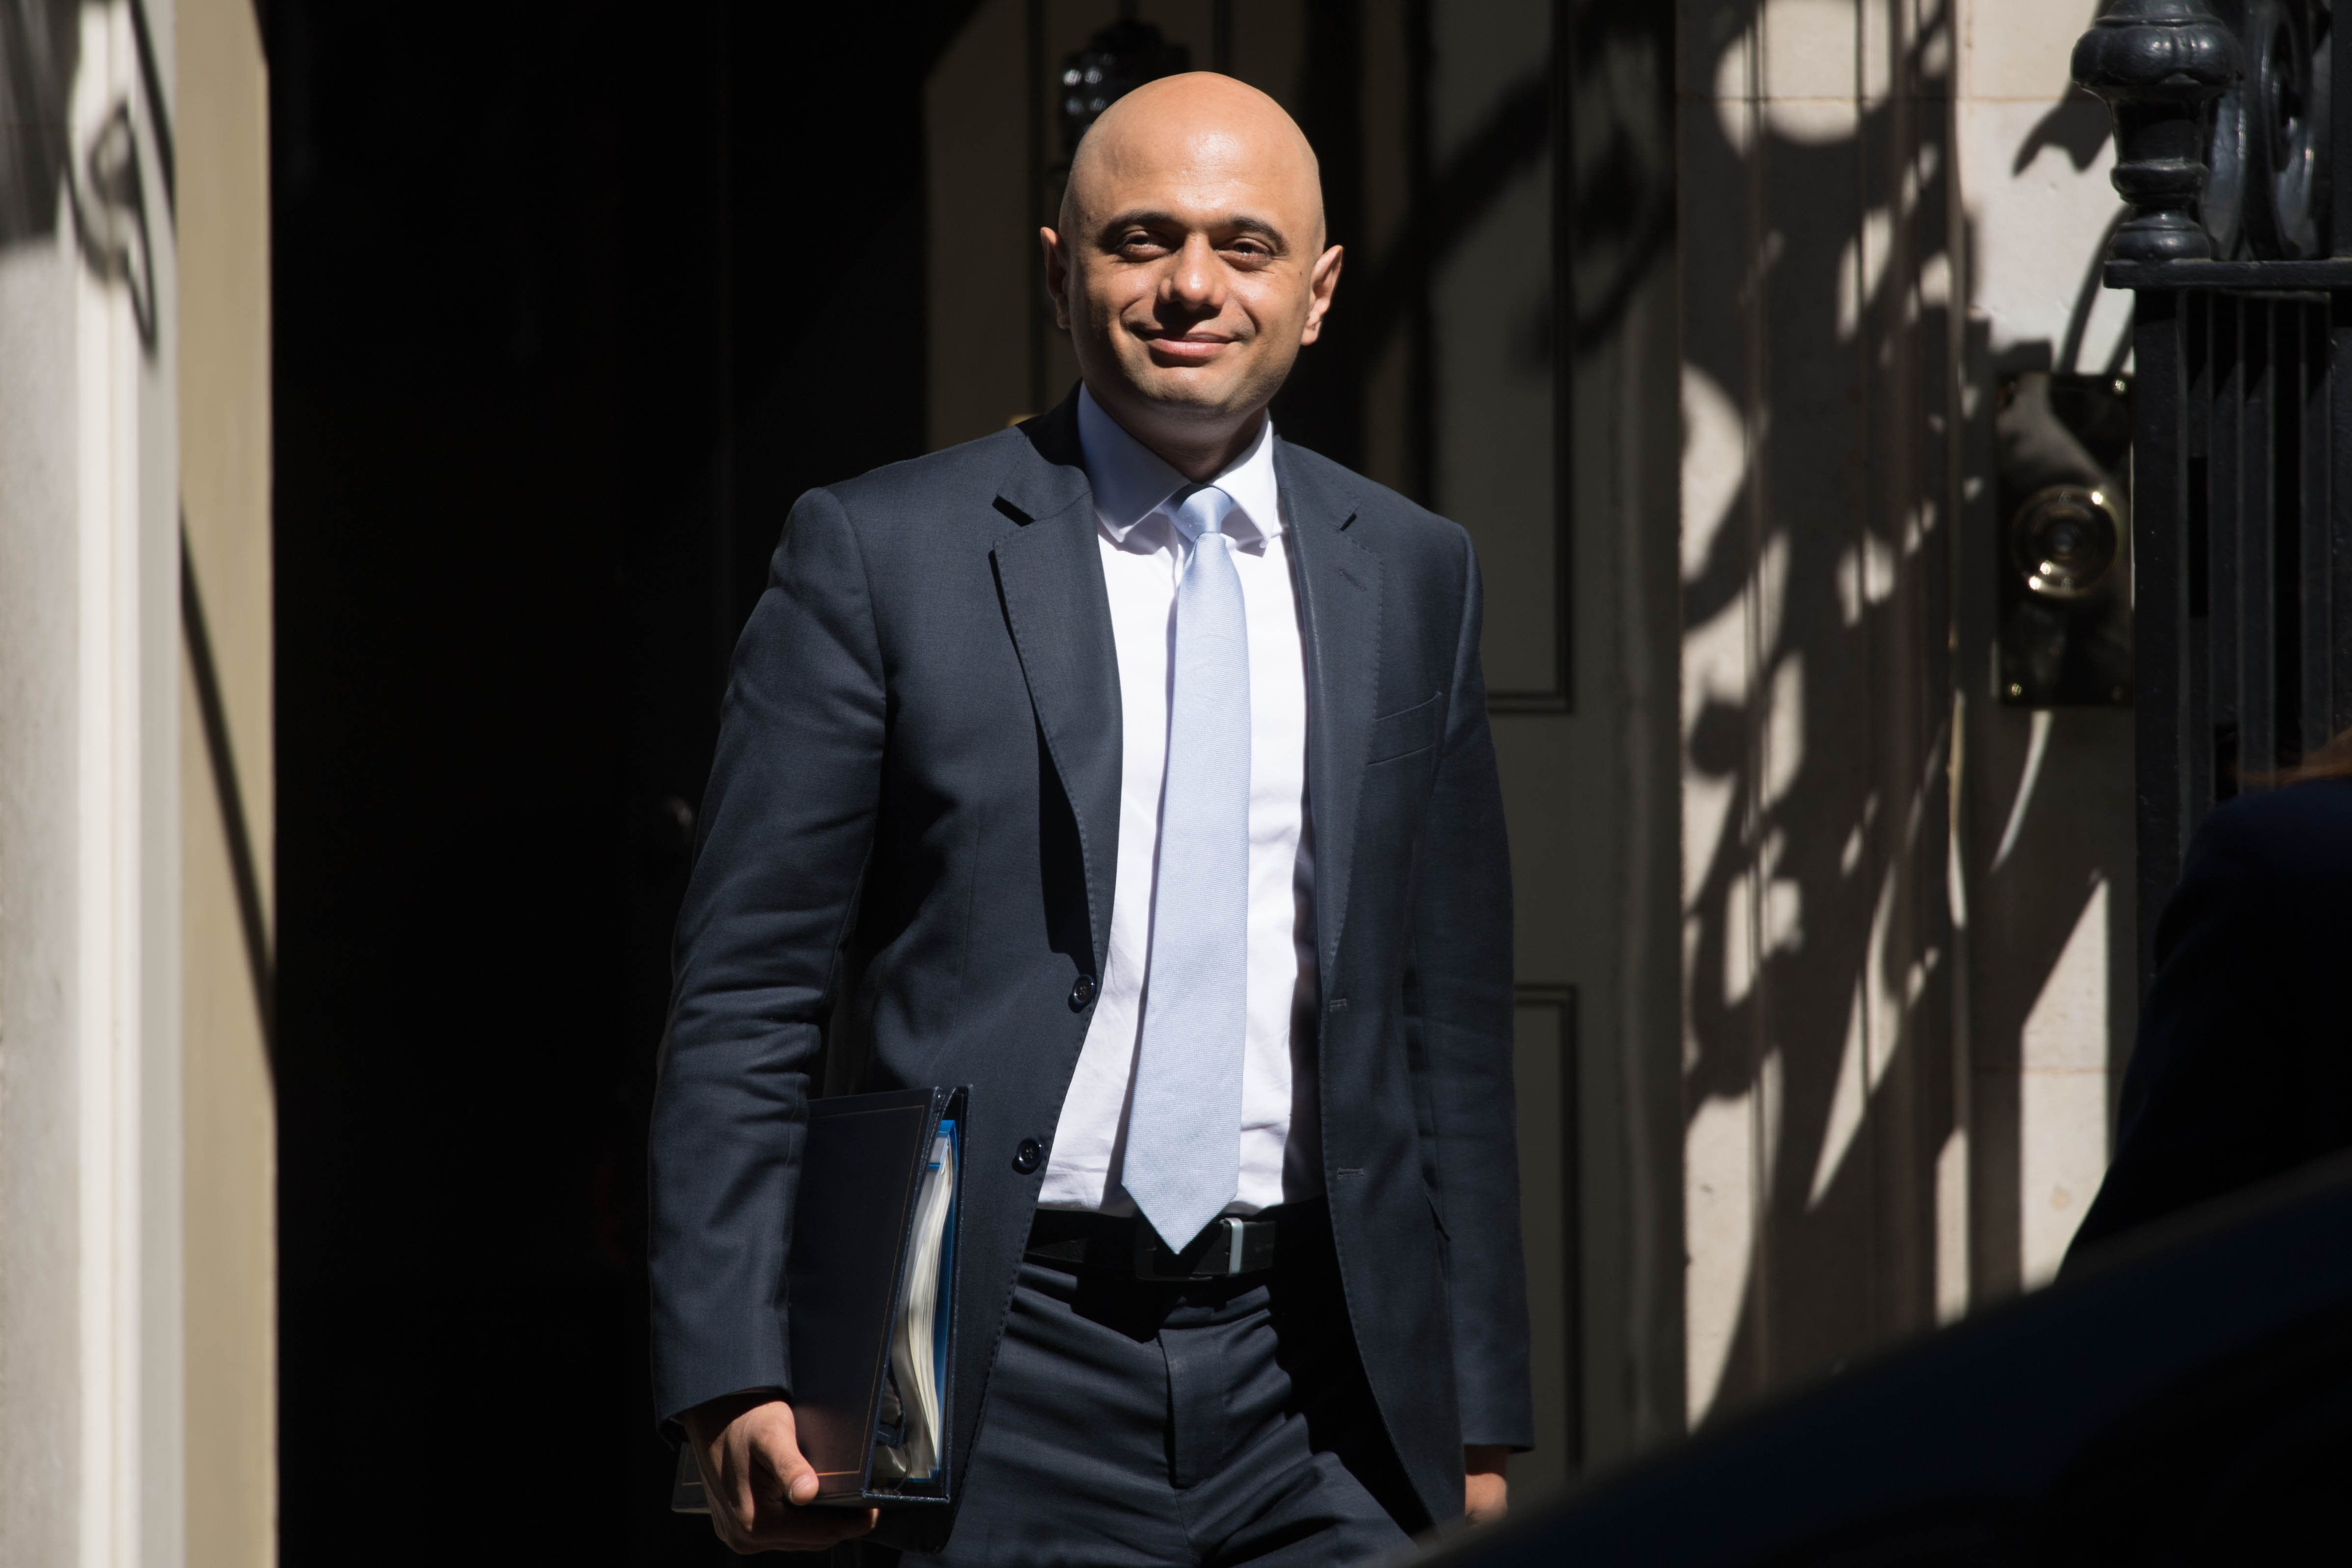 To Put His Stamp On The Home Office, Javid Can Start By Scrapping The 'Hostile Environment'